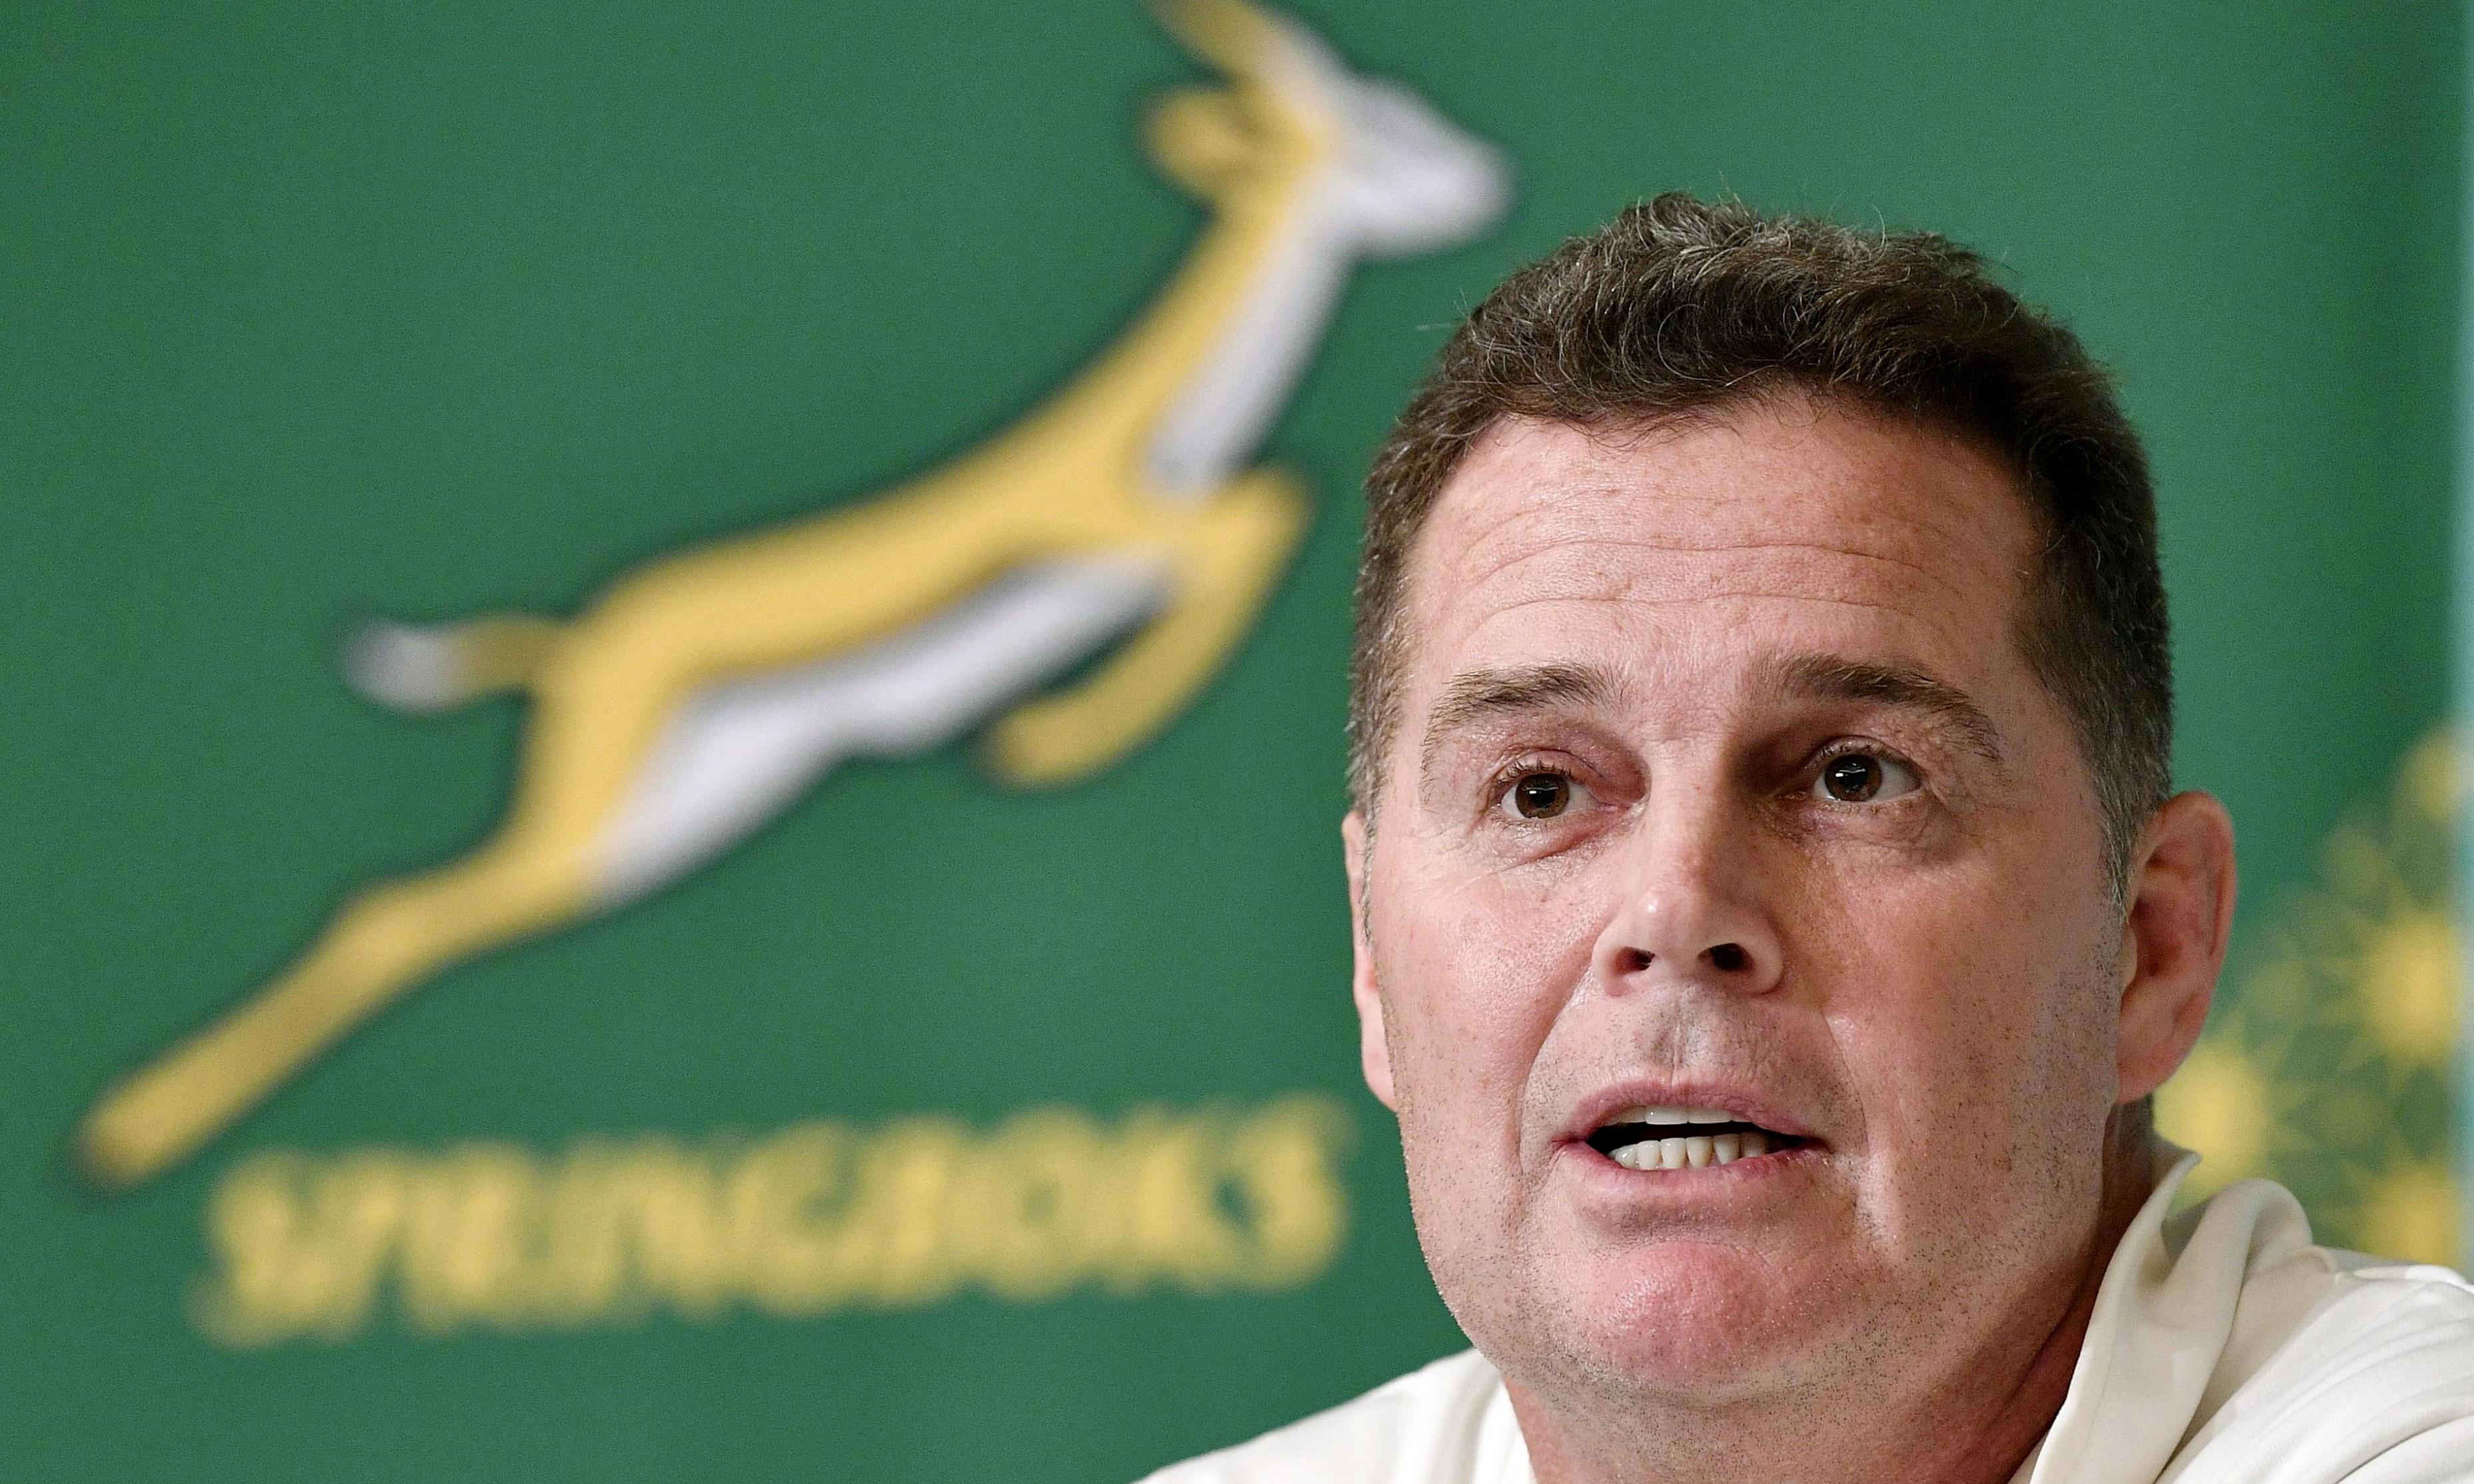 Japan are our World Cup enemy but we love the people, says Rassie Erasmus